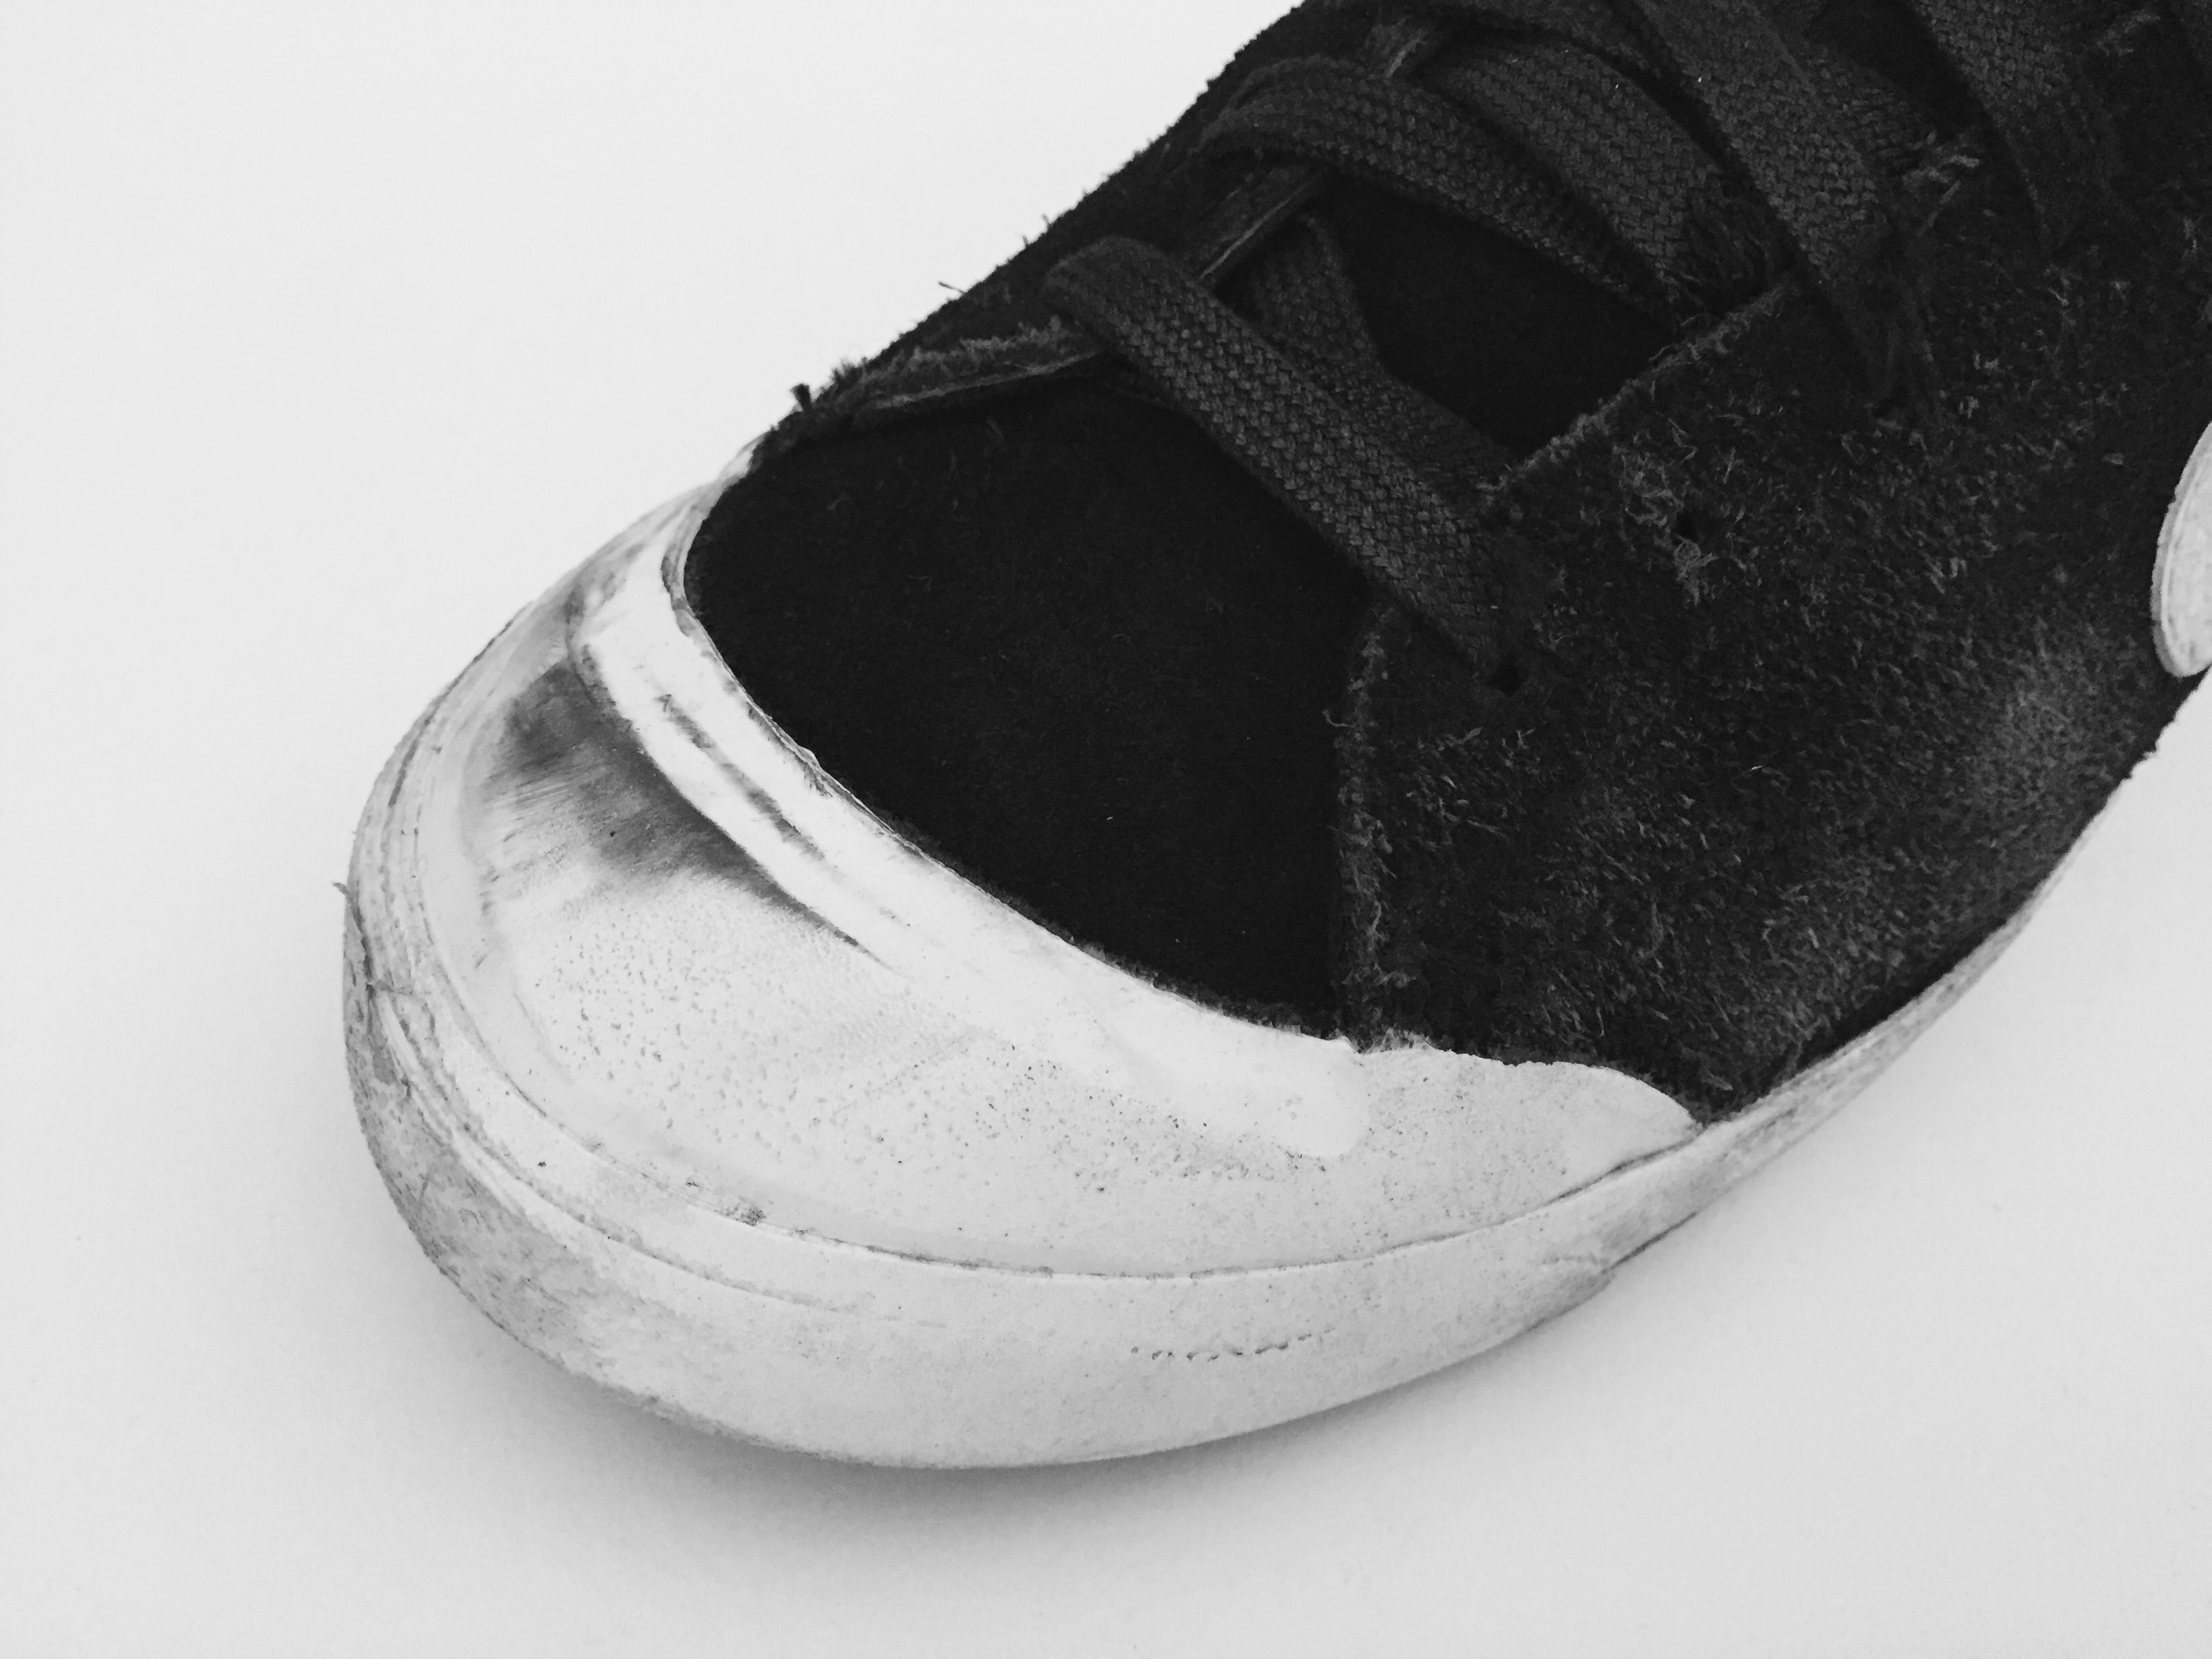 dd5410d6f2ae Nike SB All Court CK Cory Kennedy - Weartested - detailed skate shoe ...